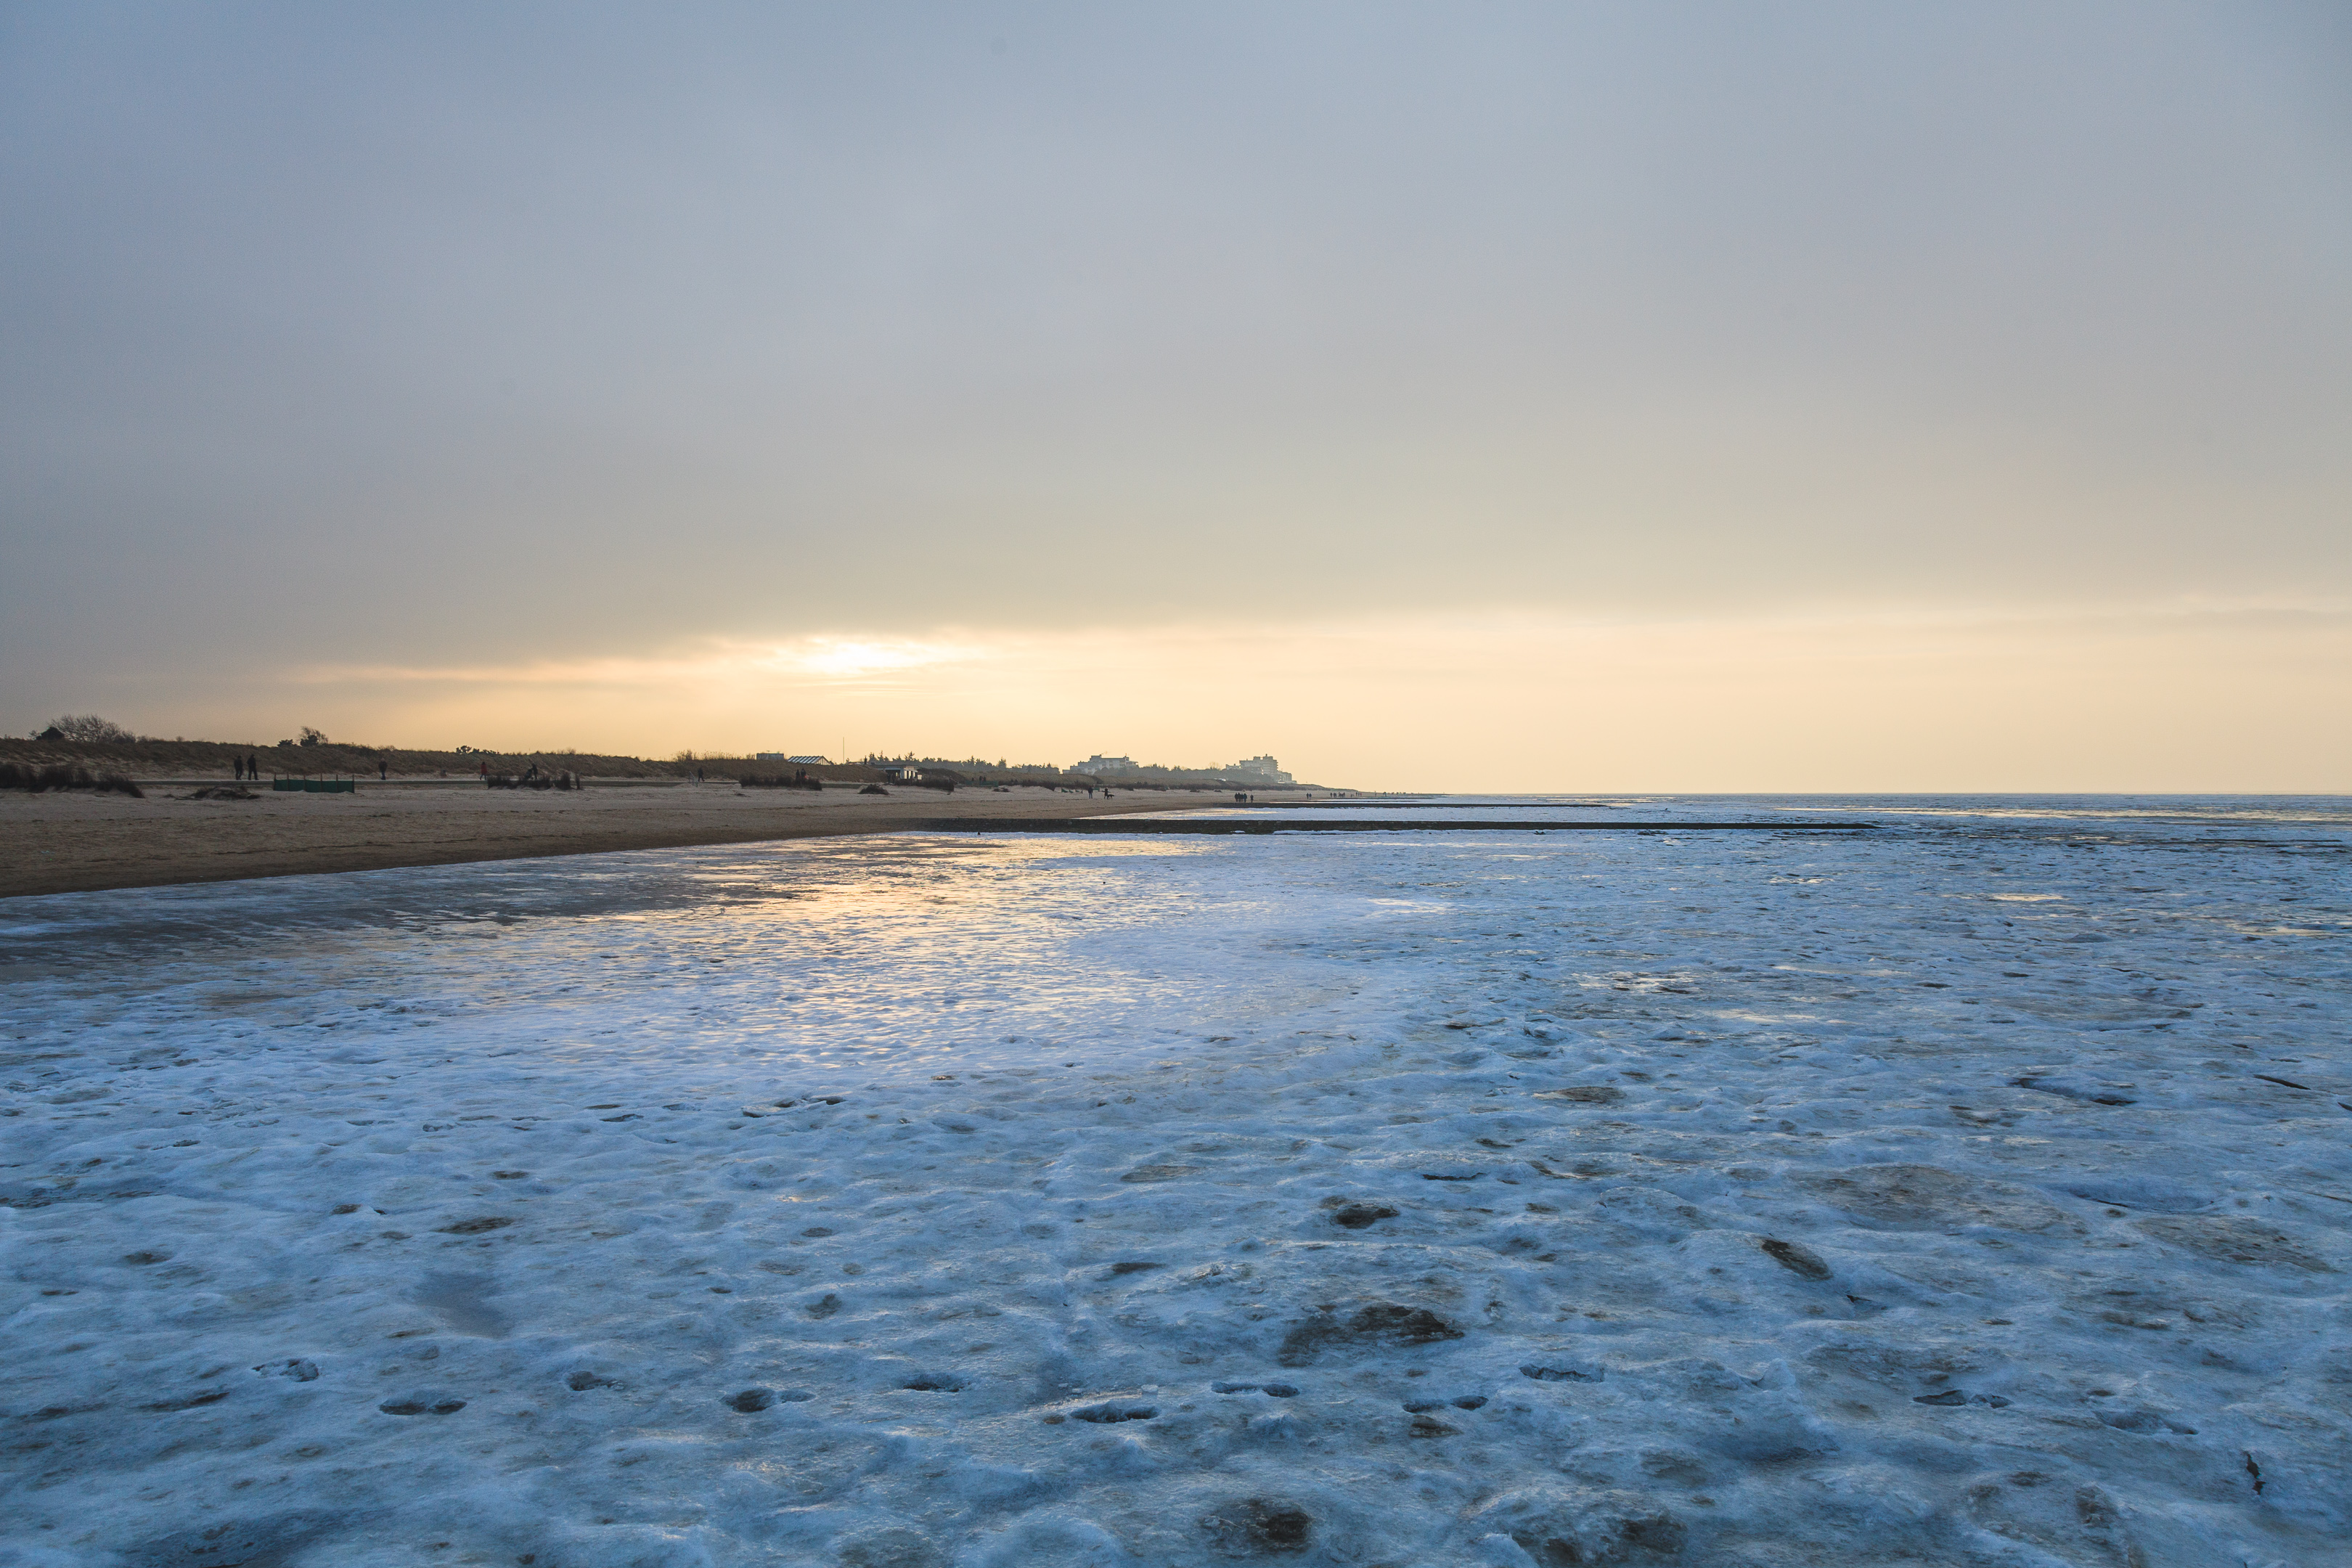 Cuxhaven – Ein Tag am Meer ohne Meer